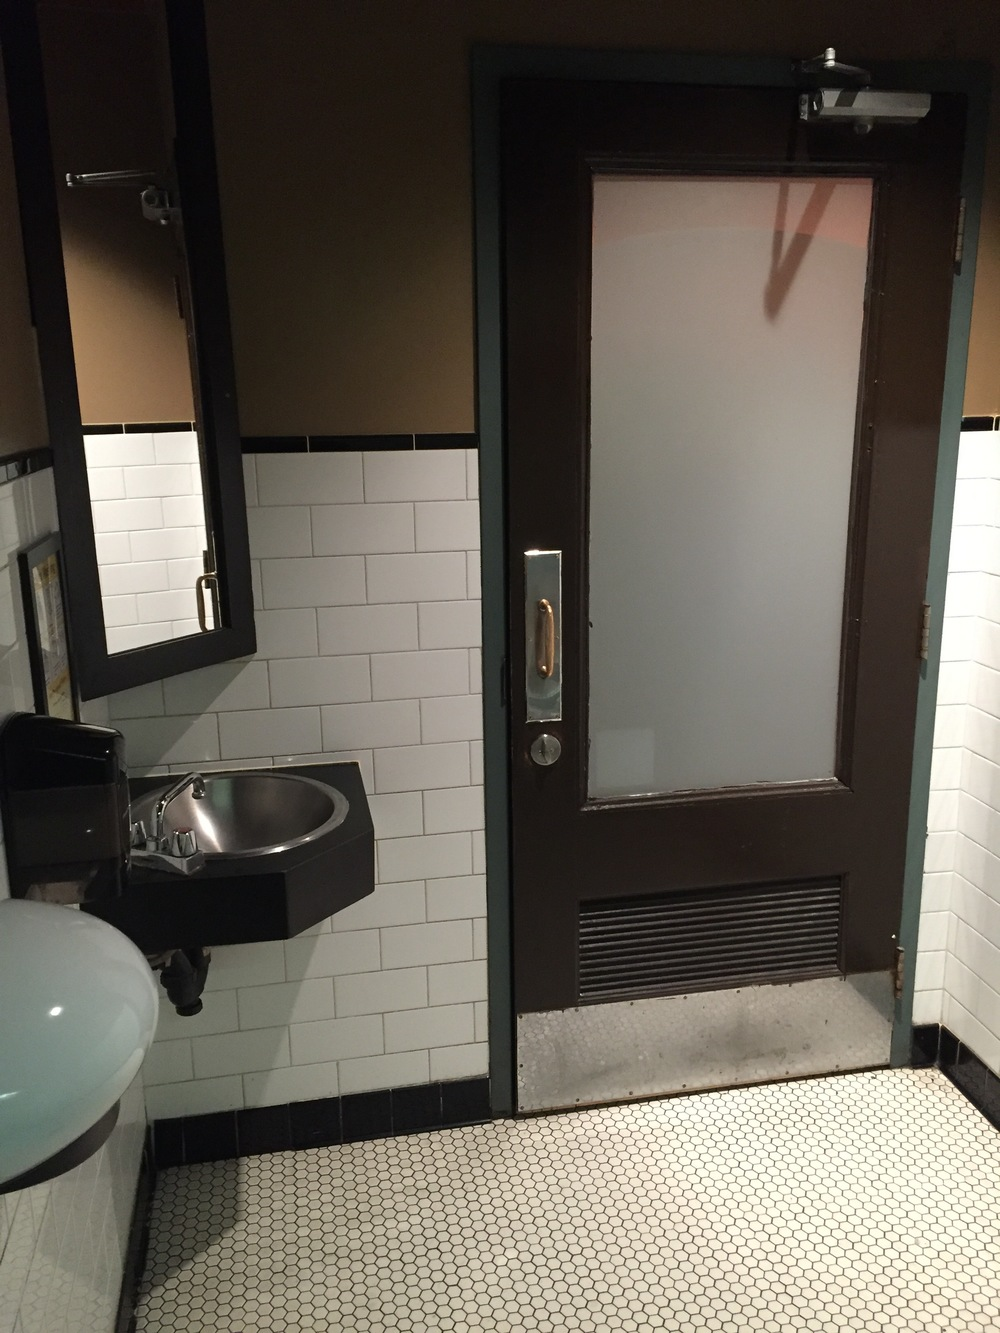 Picture of accessible entrance to the washroom